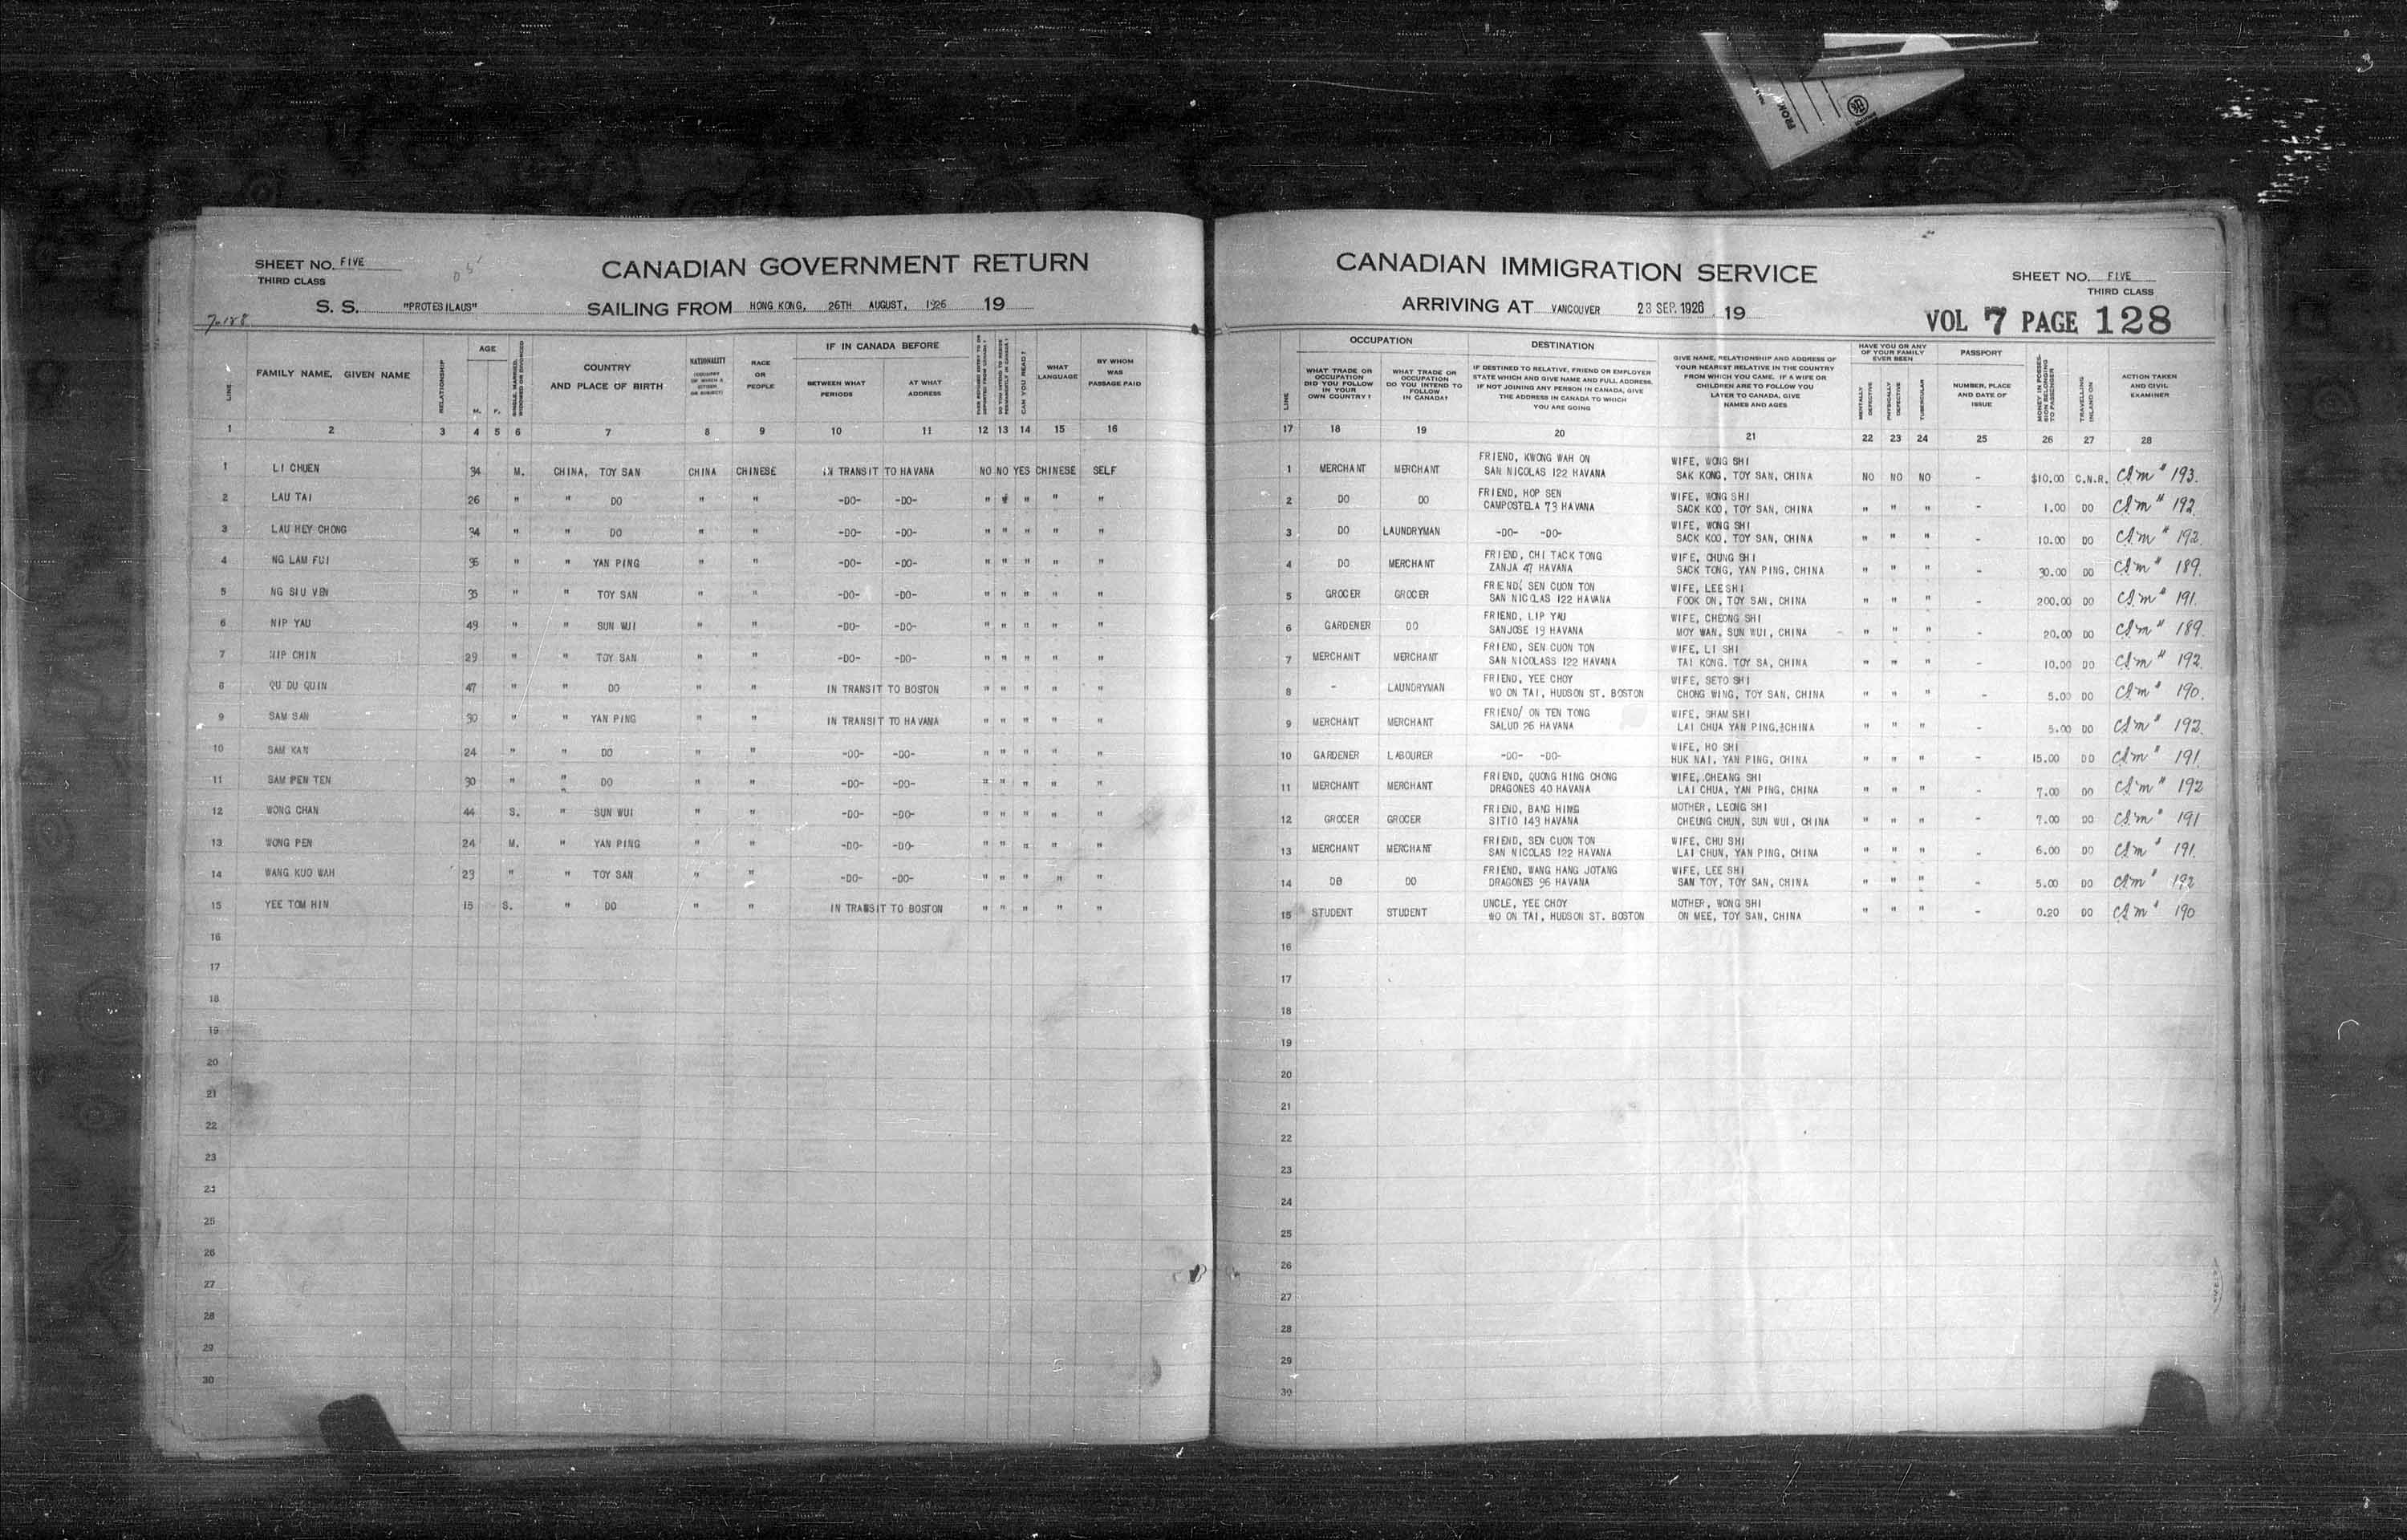 Title: Passenger Lists: Vancouver and Victoria (1925-1935) - Mikan Number: 161347 - Microform: t-14886